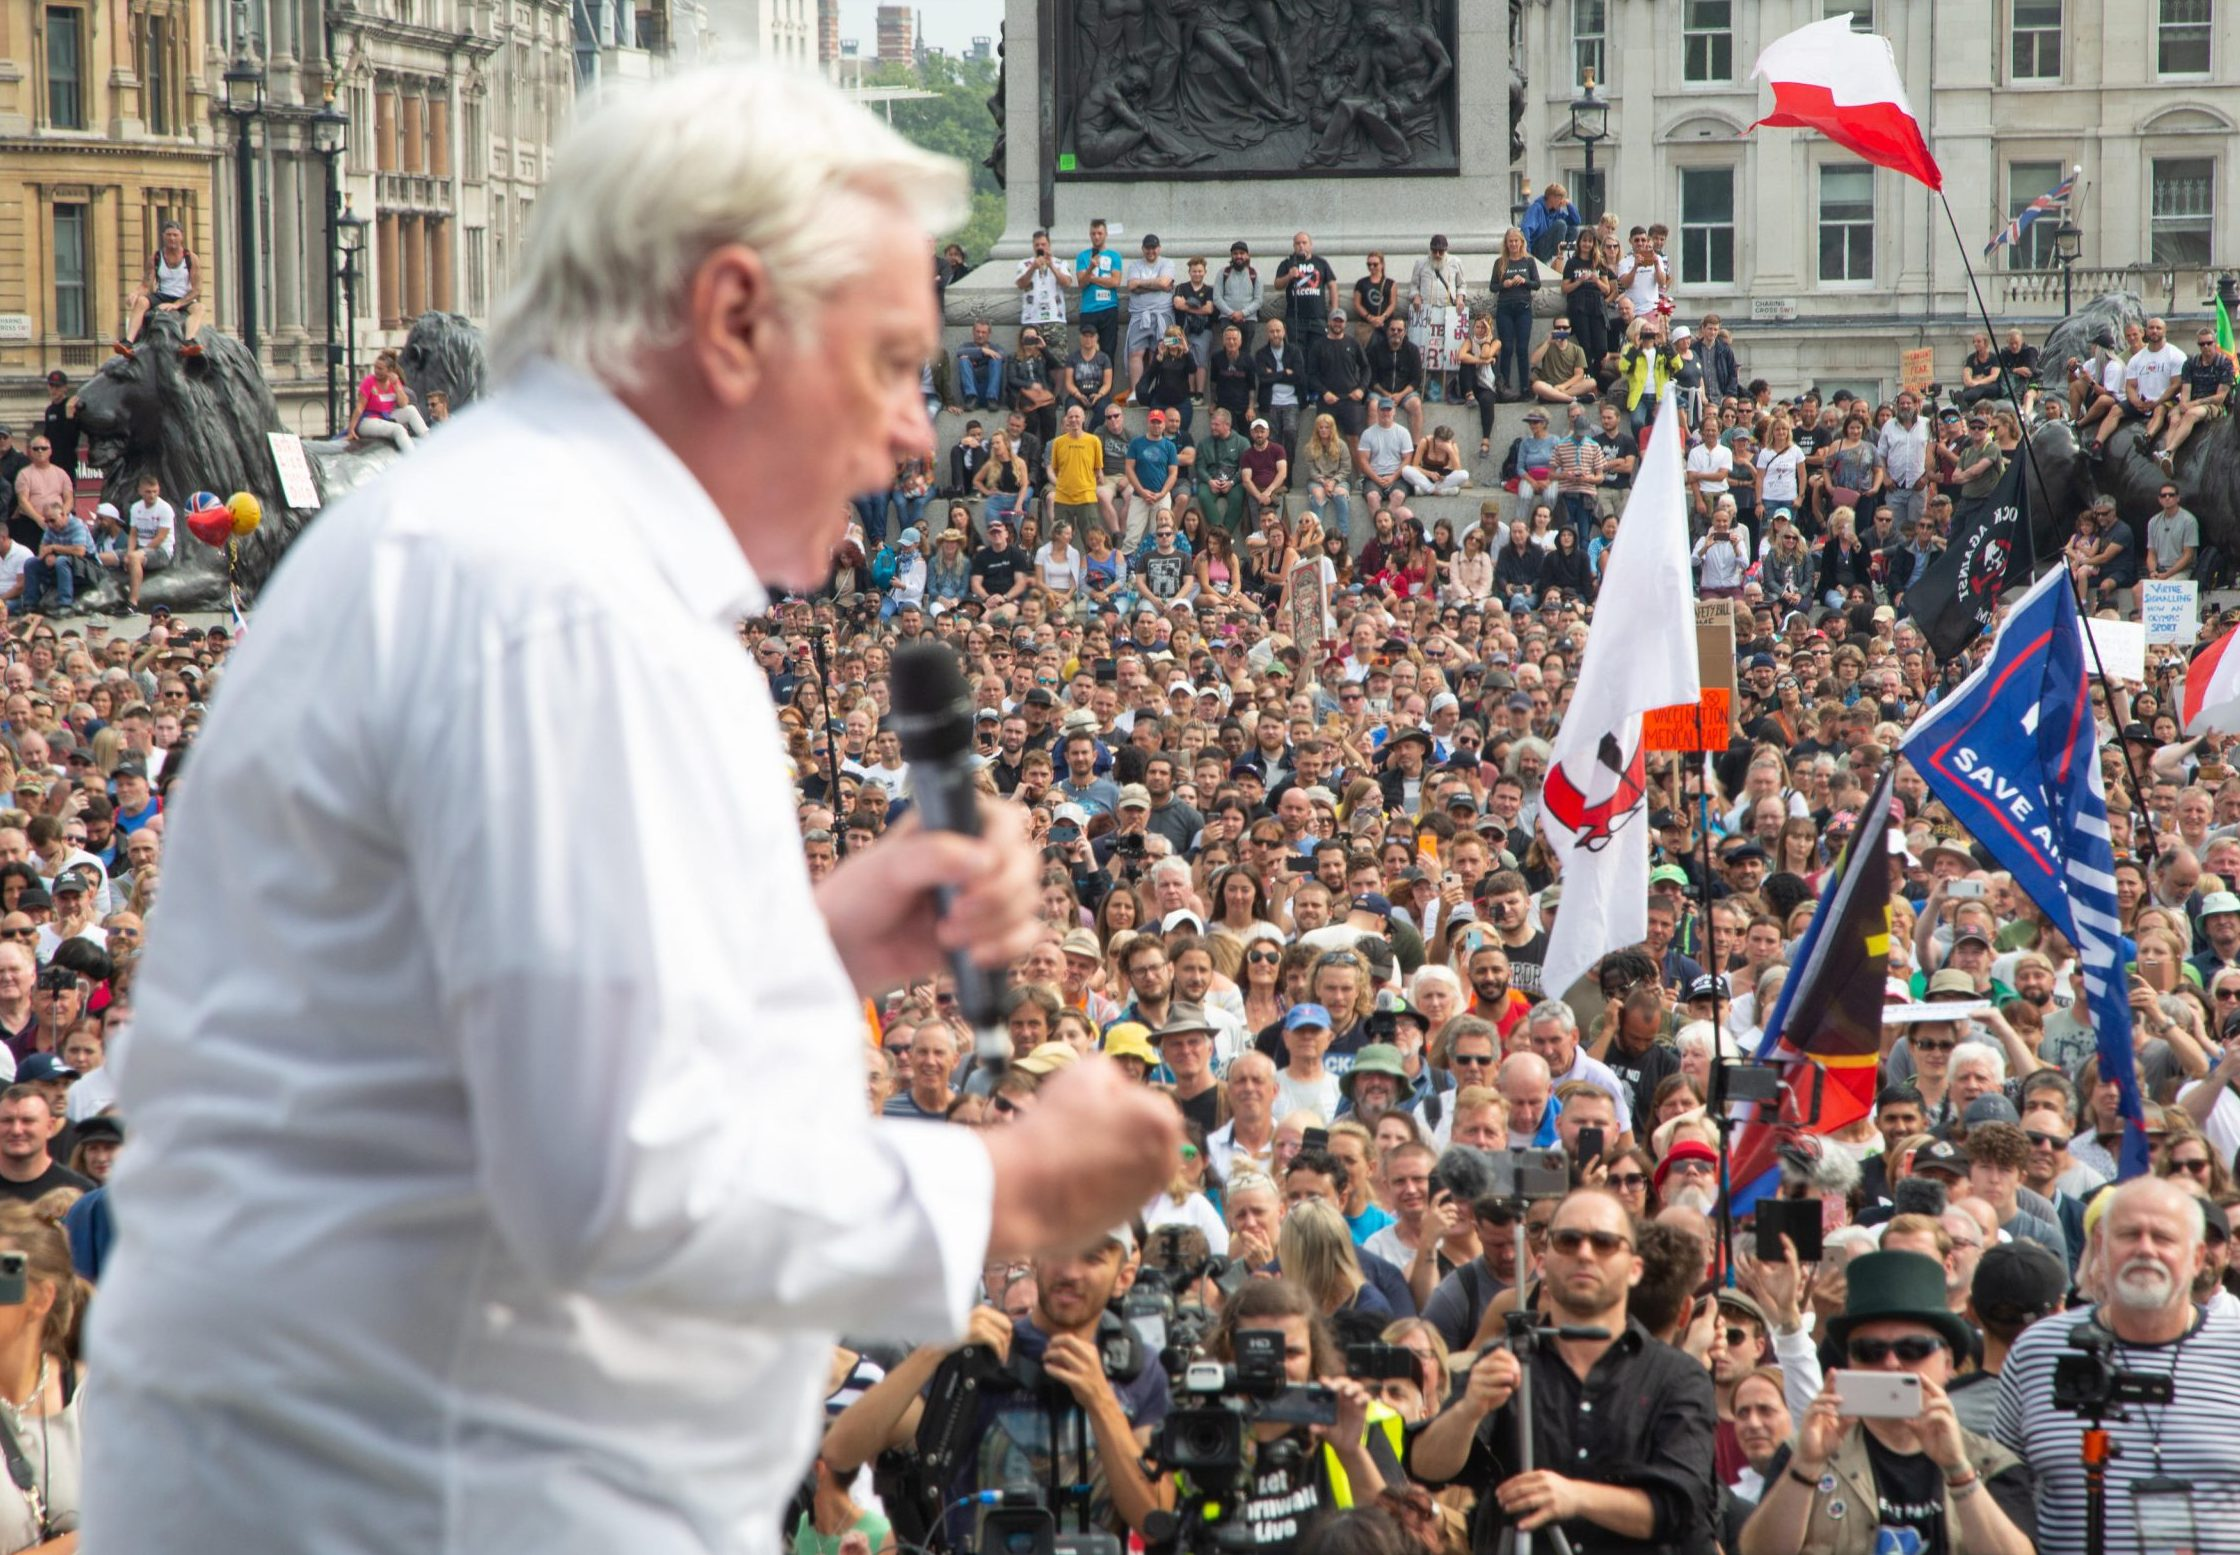 David Icke speaks at a London demo against Covid-19 restrictions. Icke has claimed that a world elite of shape-shifting reptiles includes the Queen, Tony Blair and American country singer Boxcar Willie